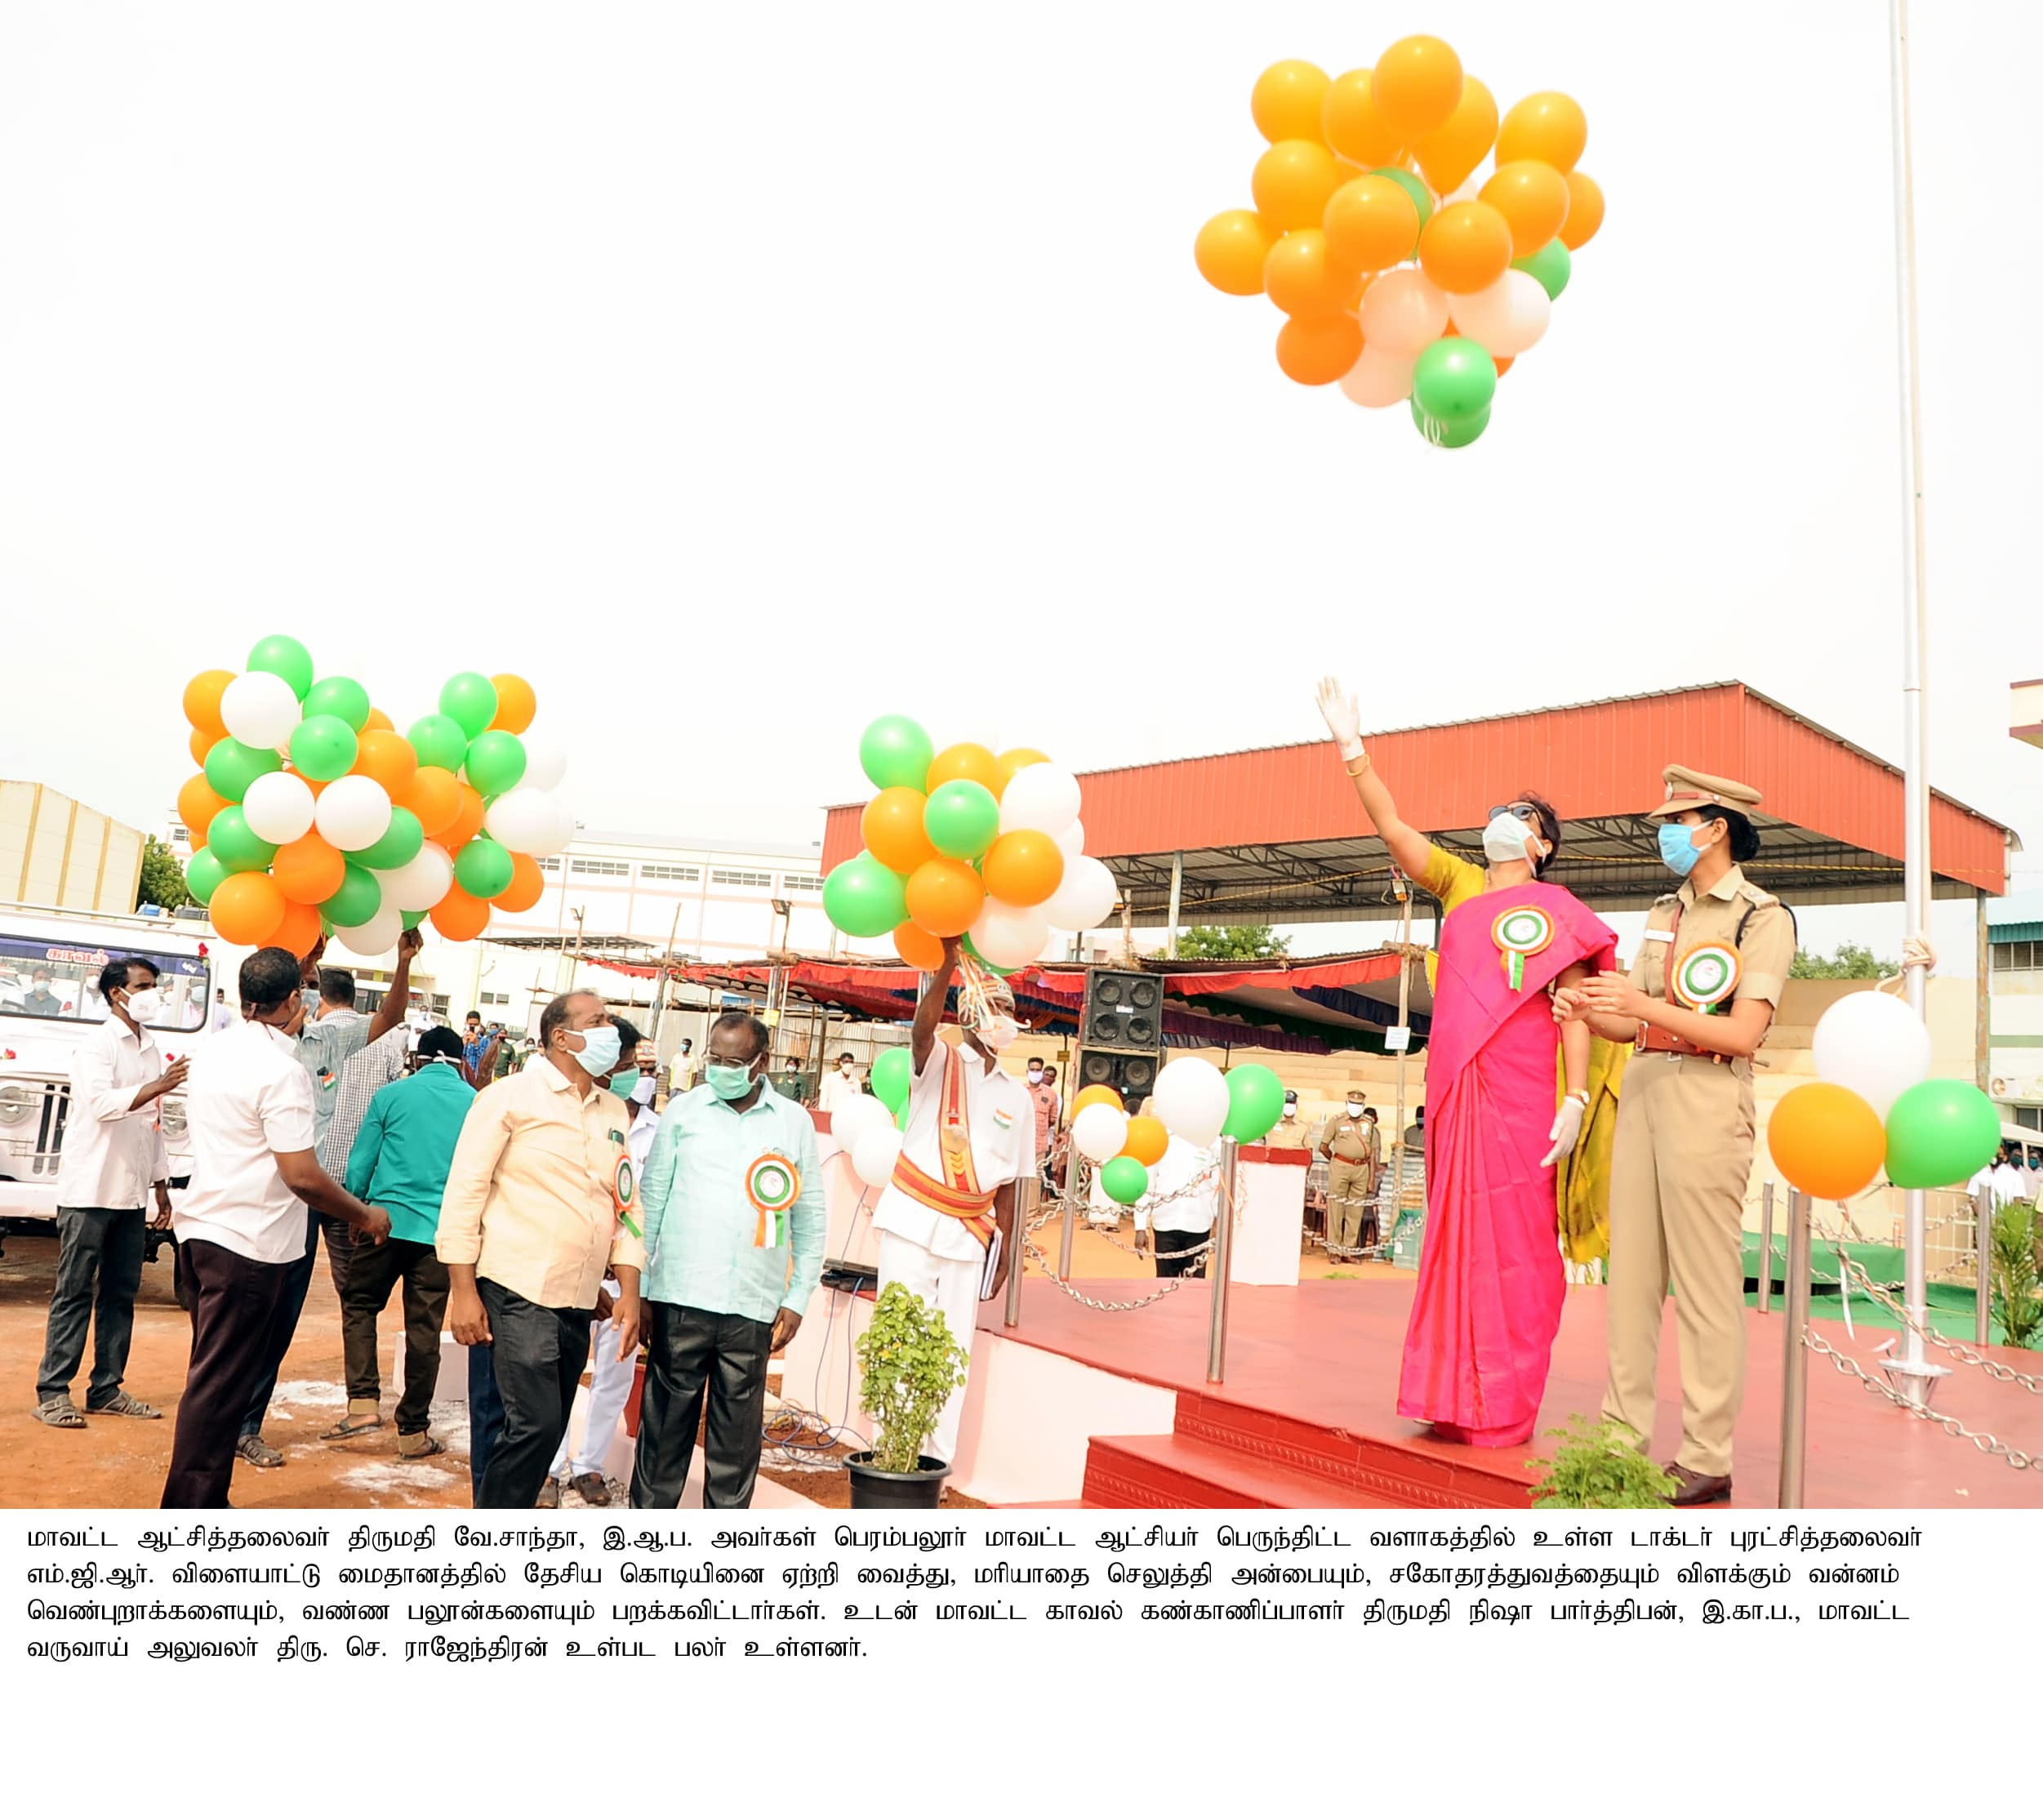 Independence Day (15.08.2020) - Tri Colour Baloons